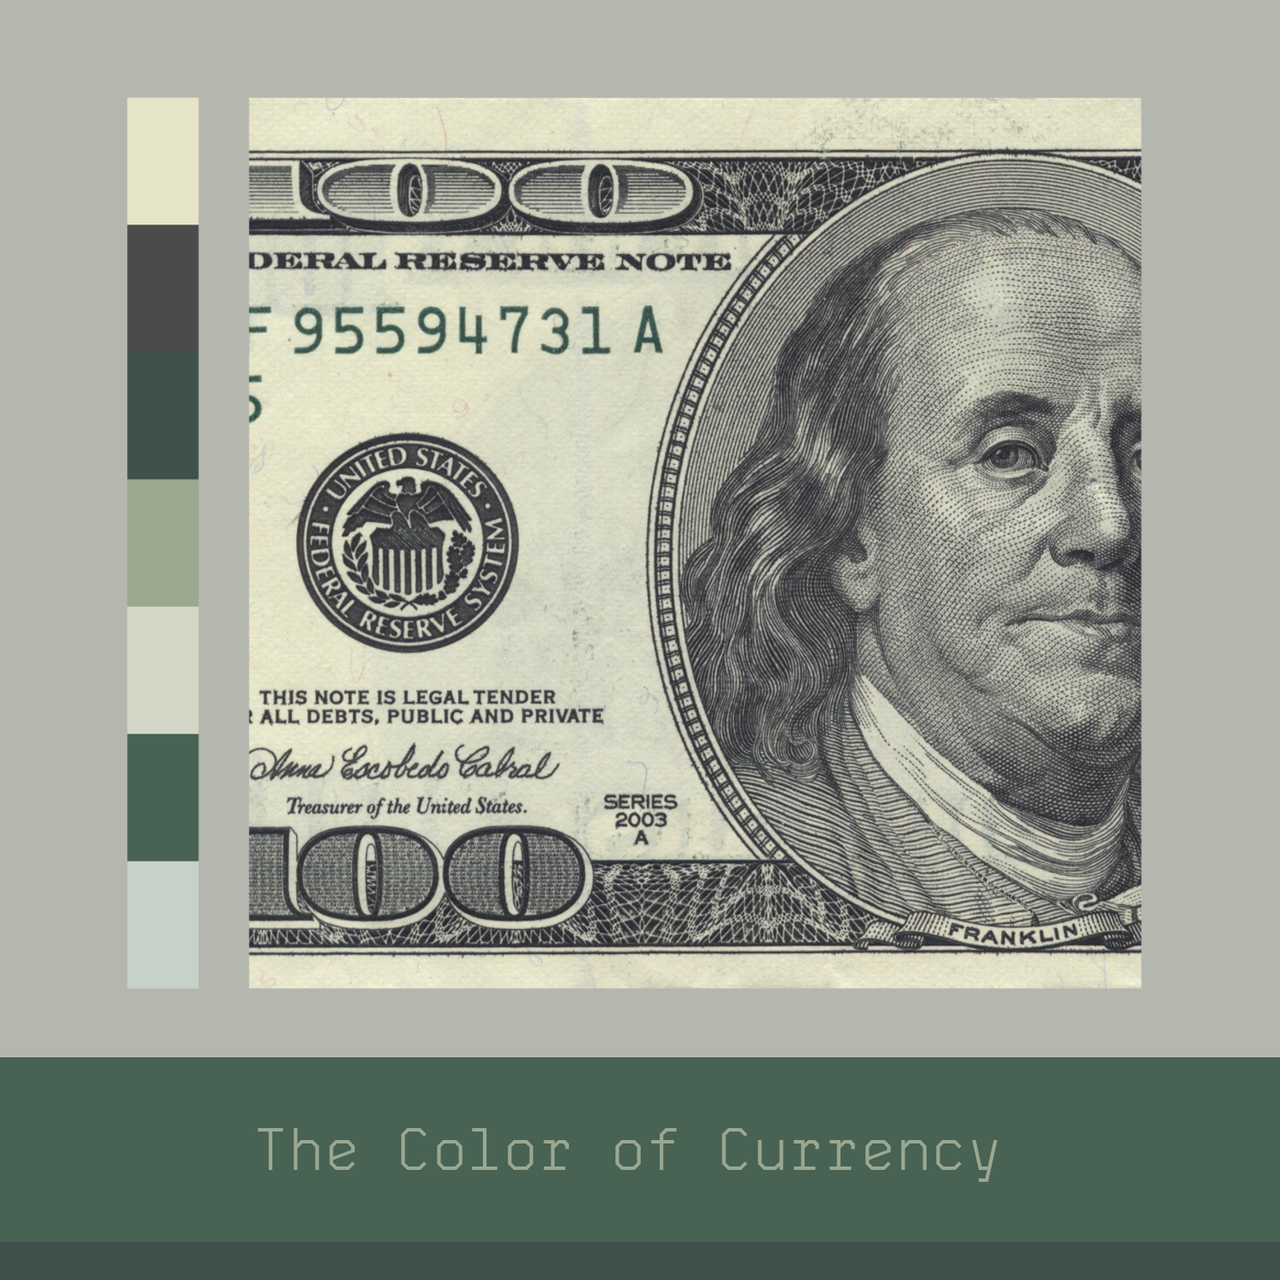 COLOR STUDY I've been using the USD as an axiom for my color studies to help guide my creative direction on a project that I'm working on called Home of the Brave.  Sometimes the inspiration you need is just inside your pocket.